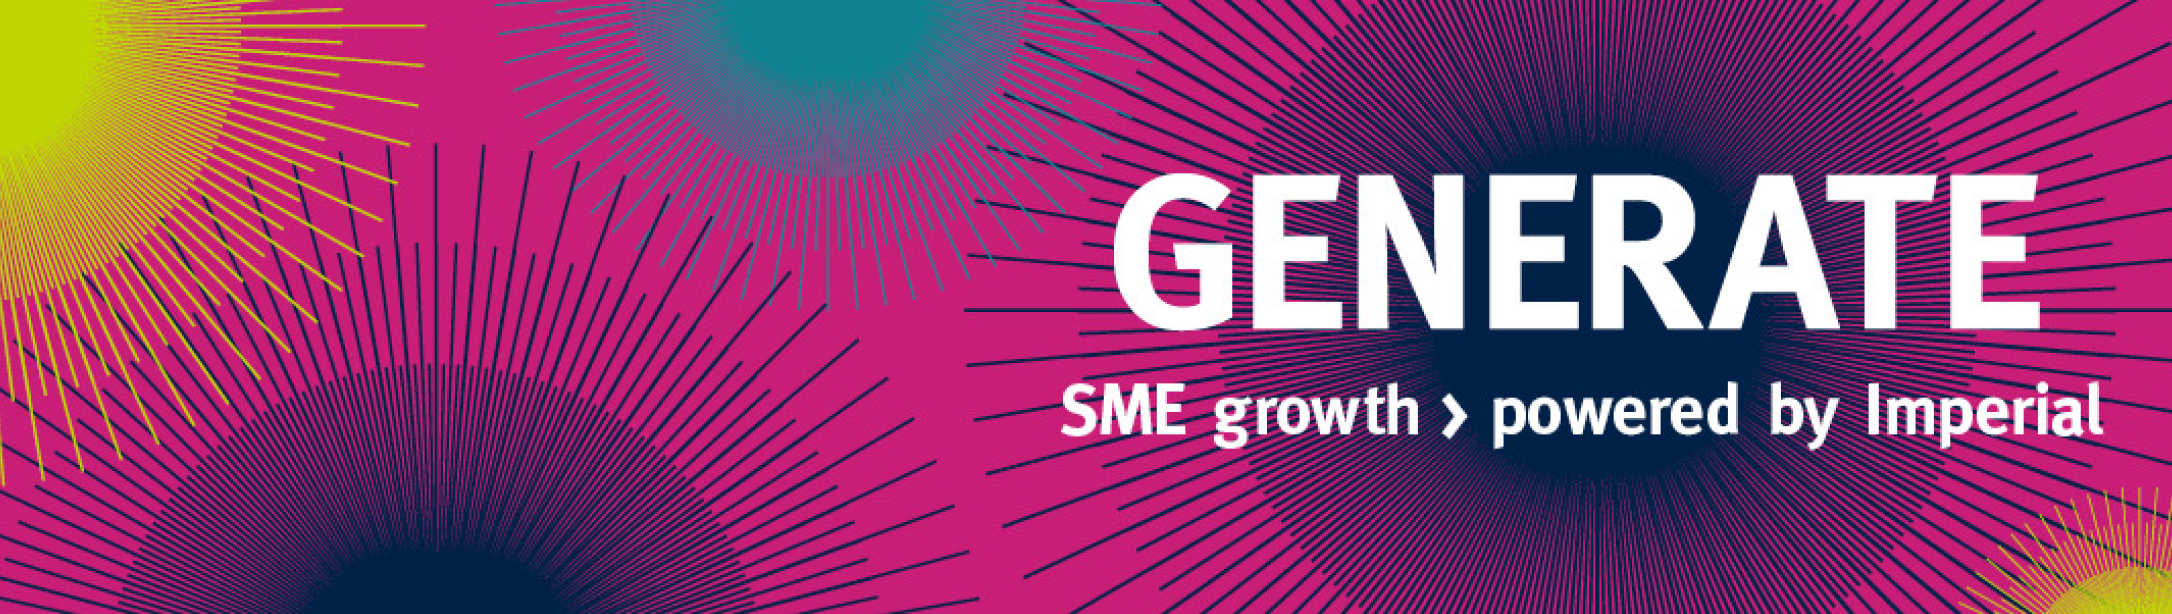 Generate - SME growth, powered by Imperial